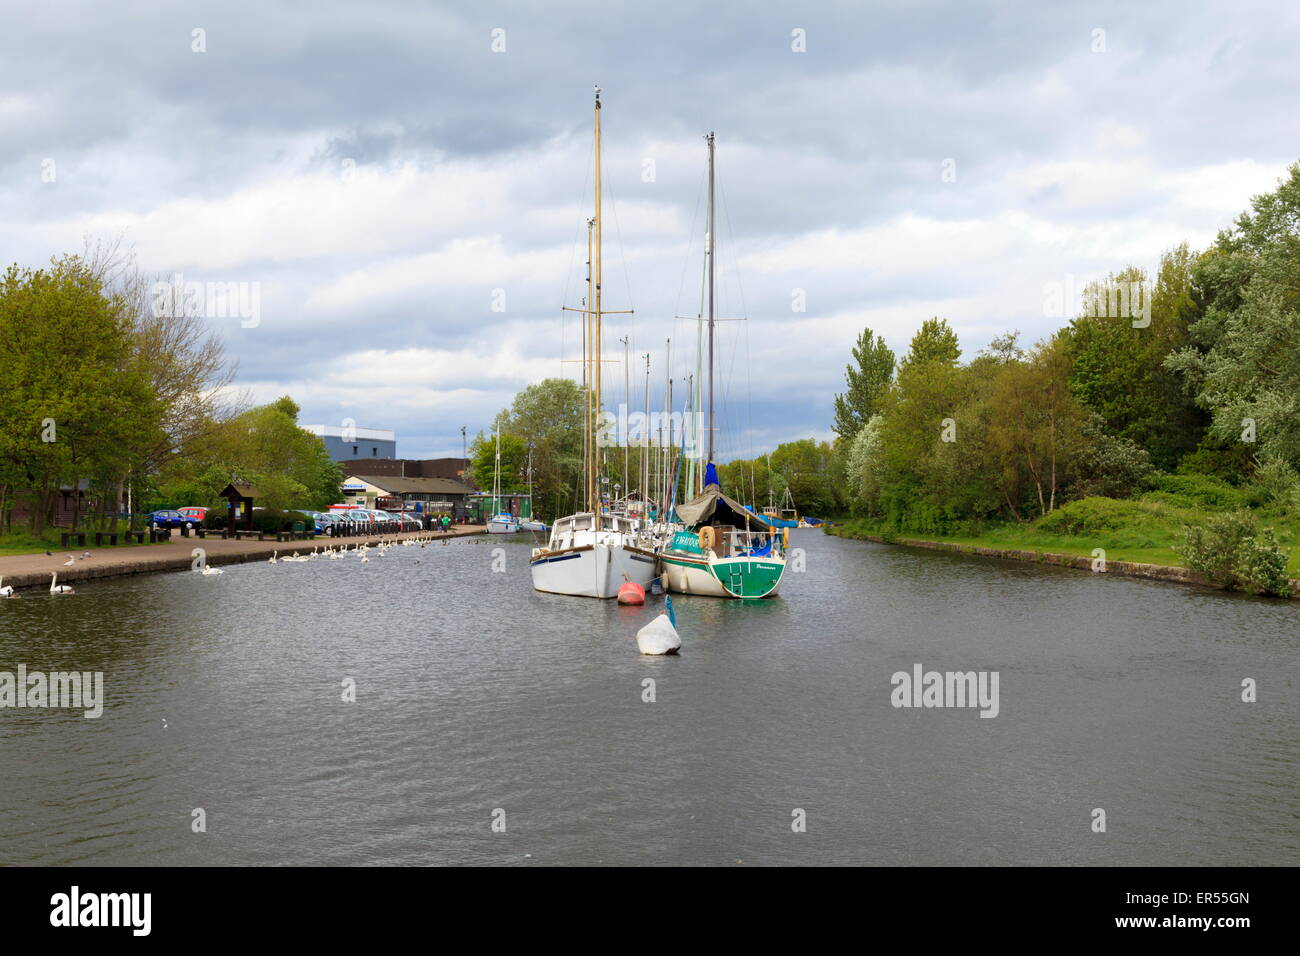 Yachts moored up on the Sankey Canal, Spike Island, Widnes - Stock Image